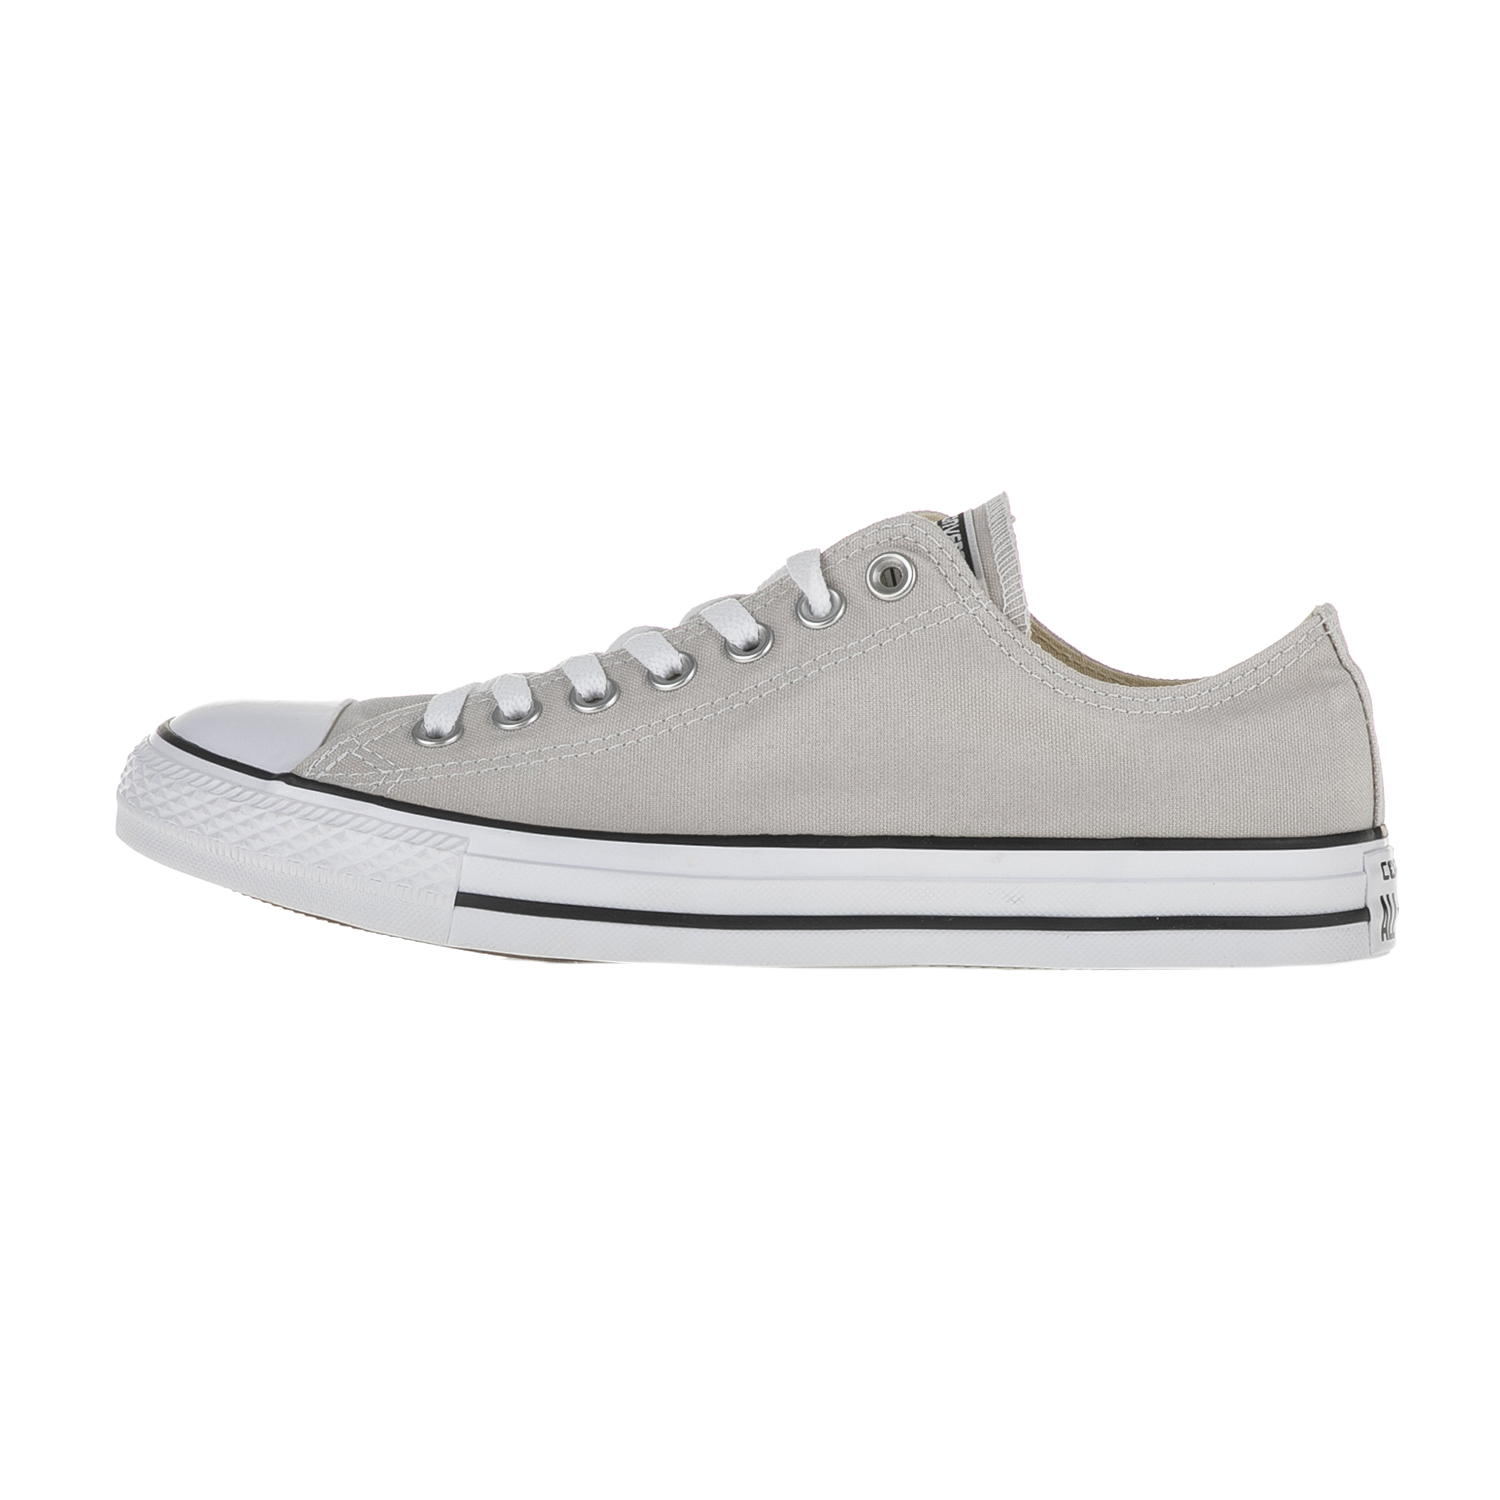 CONVERSE - Unisex χαμηλά sneakers Converse Chuck Taylor All Star Ox γκρι